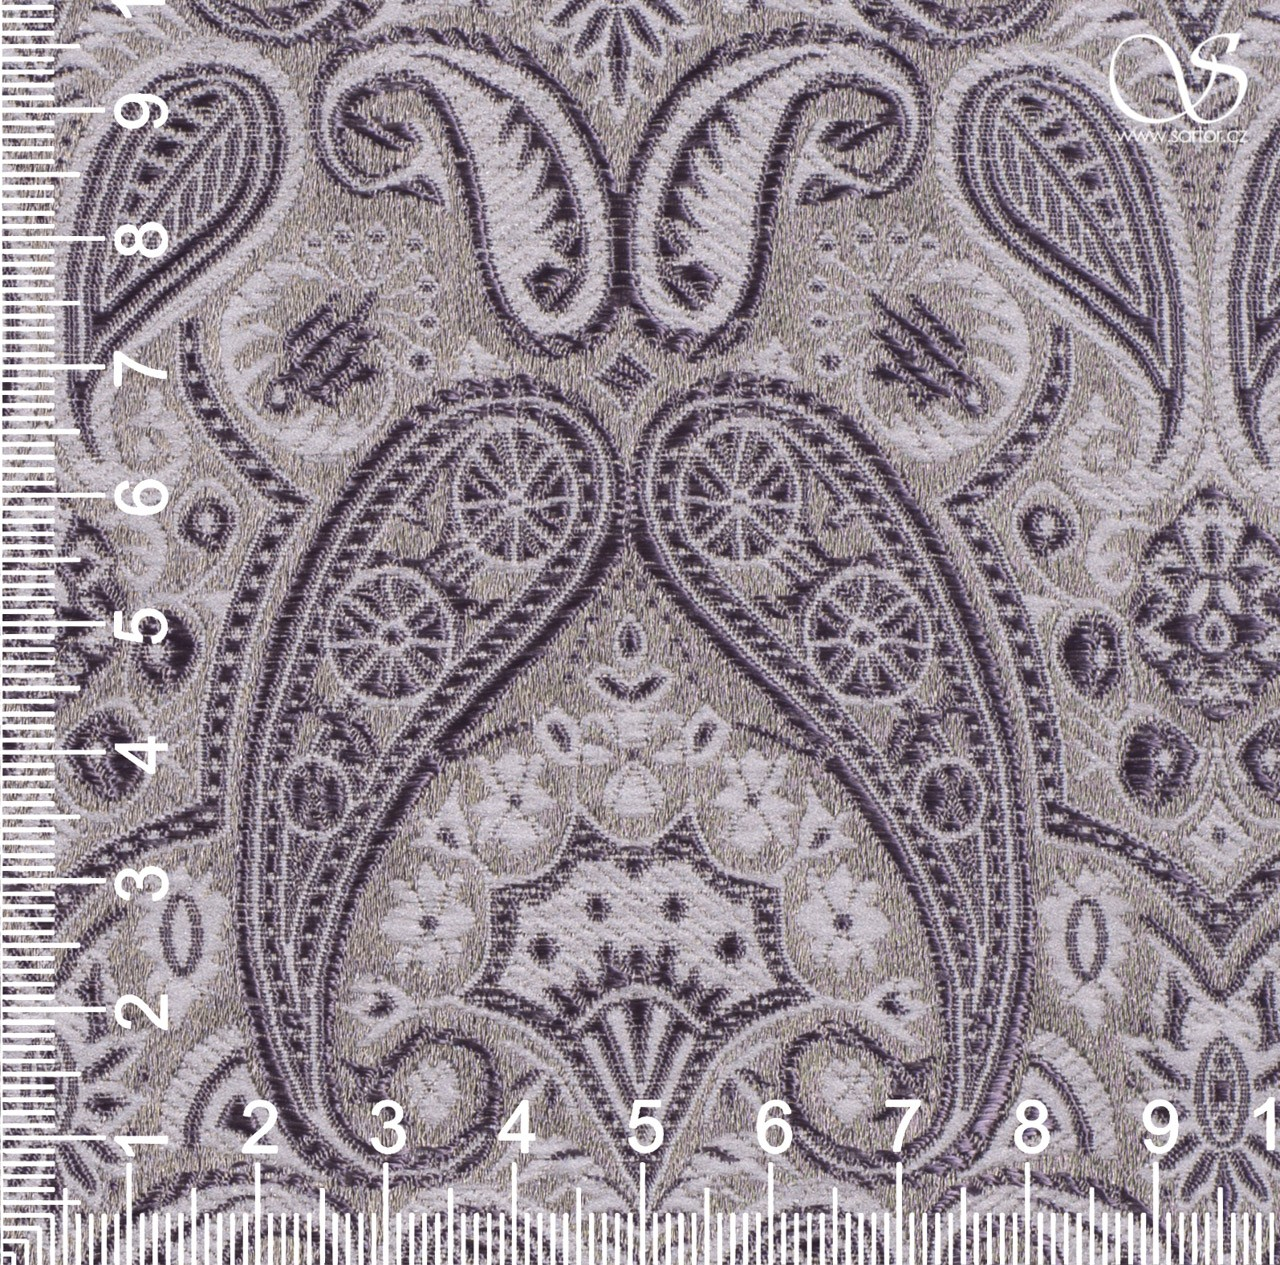 Brocade of the Duke, grey and white